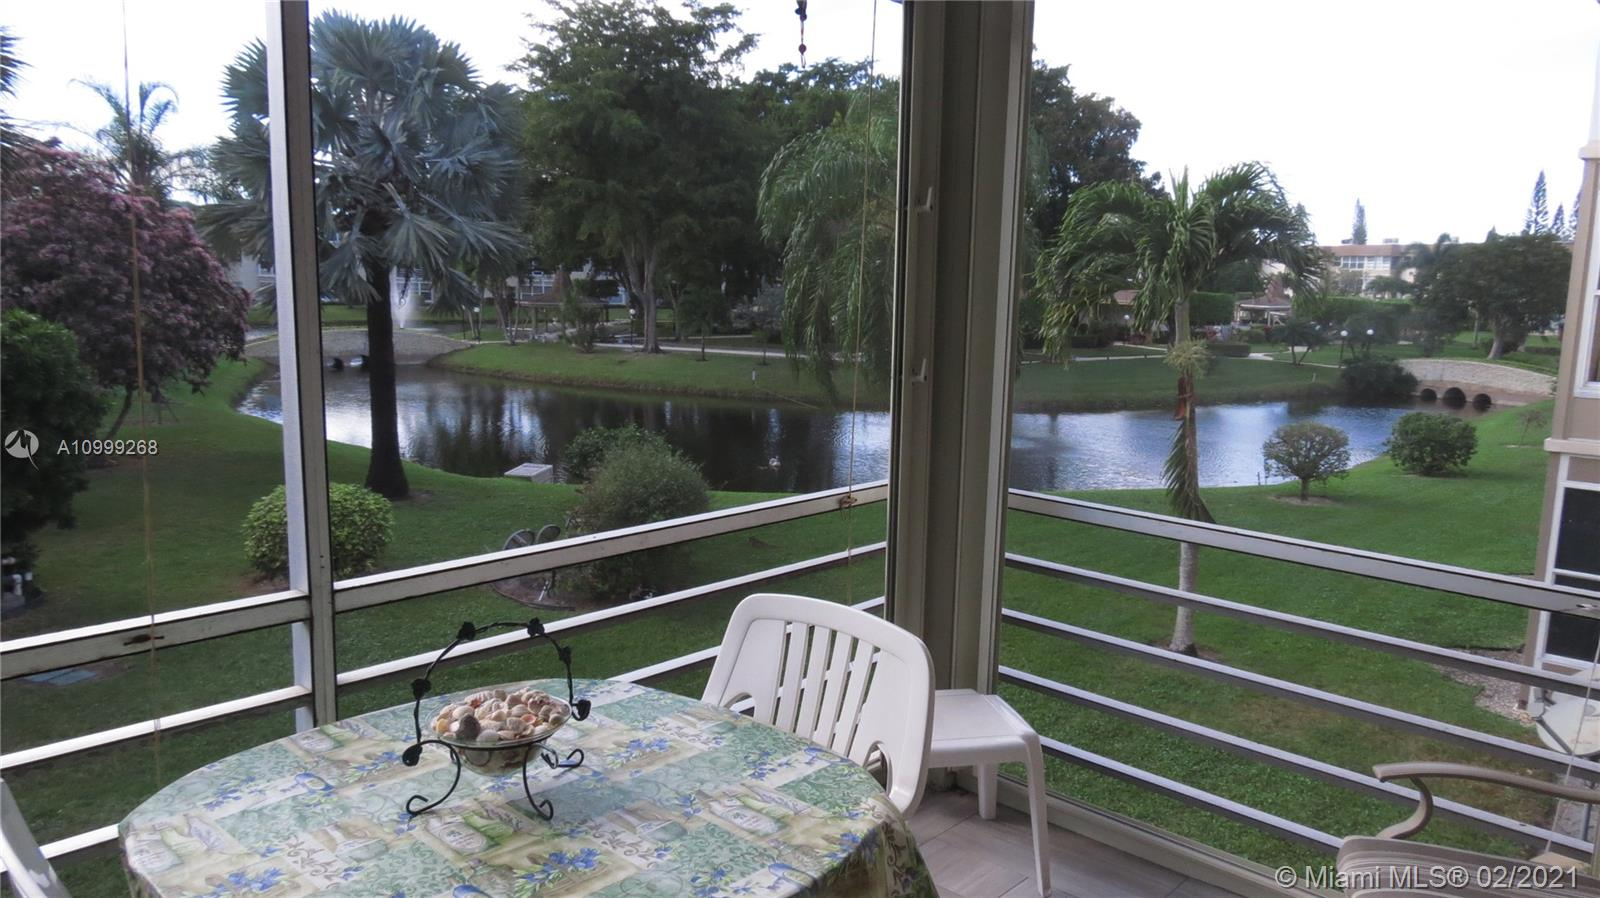 All turn key furnished very nice bright 2 bedrooms 2 bathrooms on second floor with a beautiful view of the lake. Tile flooring throughout. Very spacious unit with a lot of storage and large closet in master bedroom. Nice patio with updated tiles and hurricane shutters. Very active well maintained community. Close to shopping, Publix, Walmart, Pharmacy, dining. About 15 minutes to the beach as well as the Fort Lauderdale Airport. Low maintenance fees.